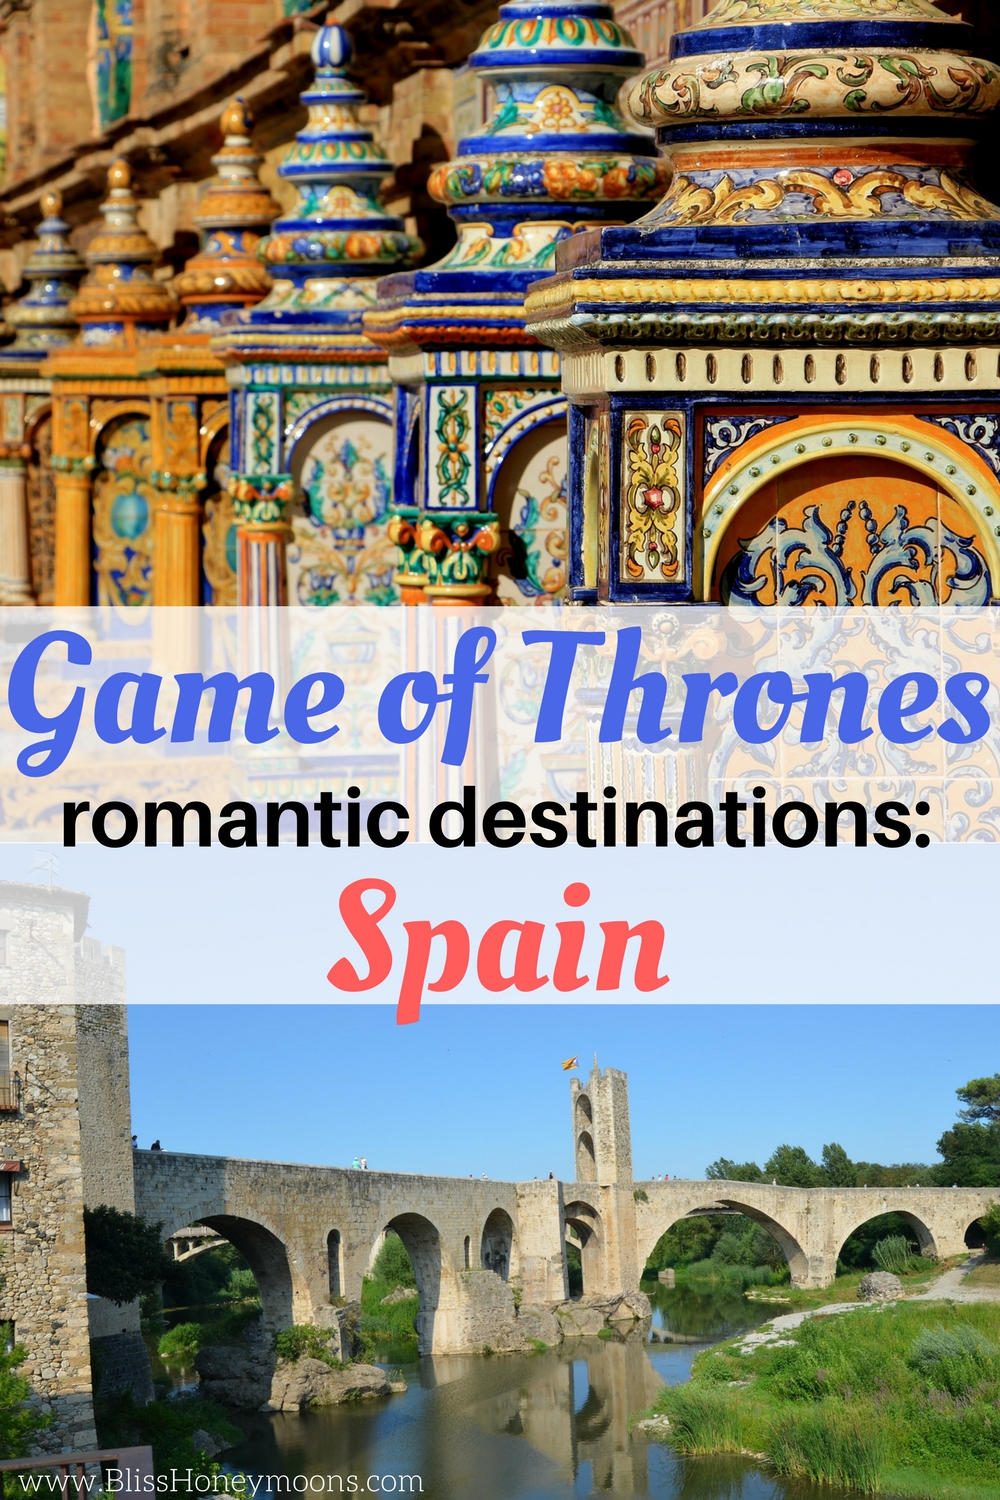 Spain Game of Thrones, Game of Thrones travel, Game of Thrones destinations Spain, unique destination wedding ideas, unique destination honeymoon ideas, top destination wedding ideas, romantic travel Spain, Seville travel ideas, Girona travel ideas, Bliss Honeymoons reviews